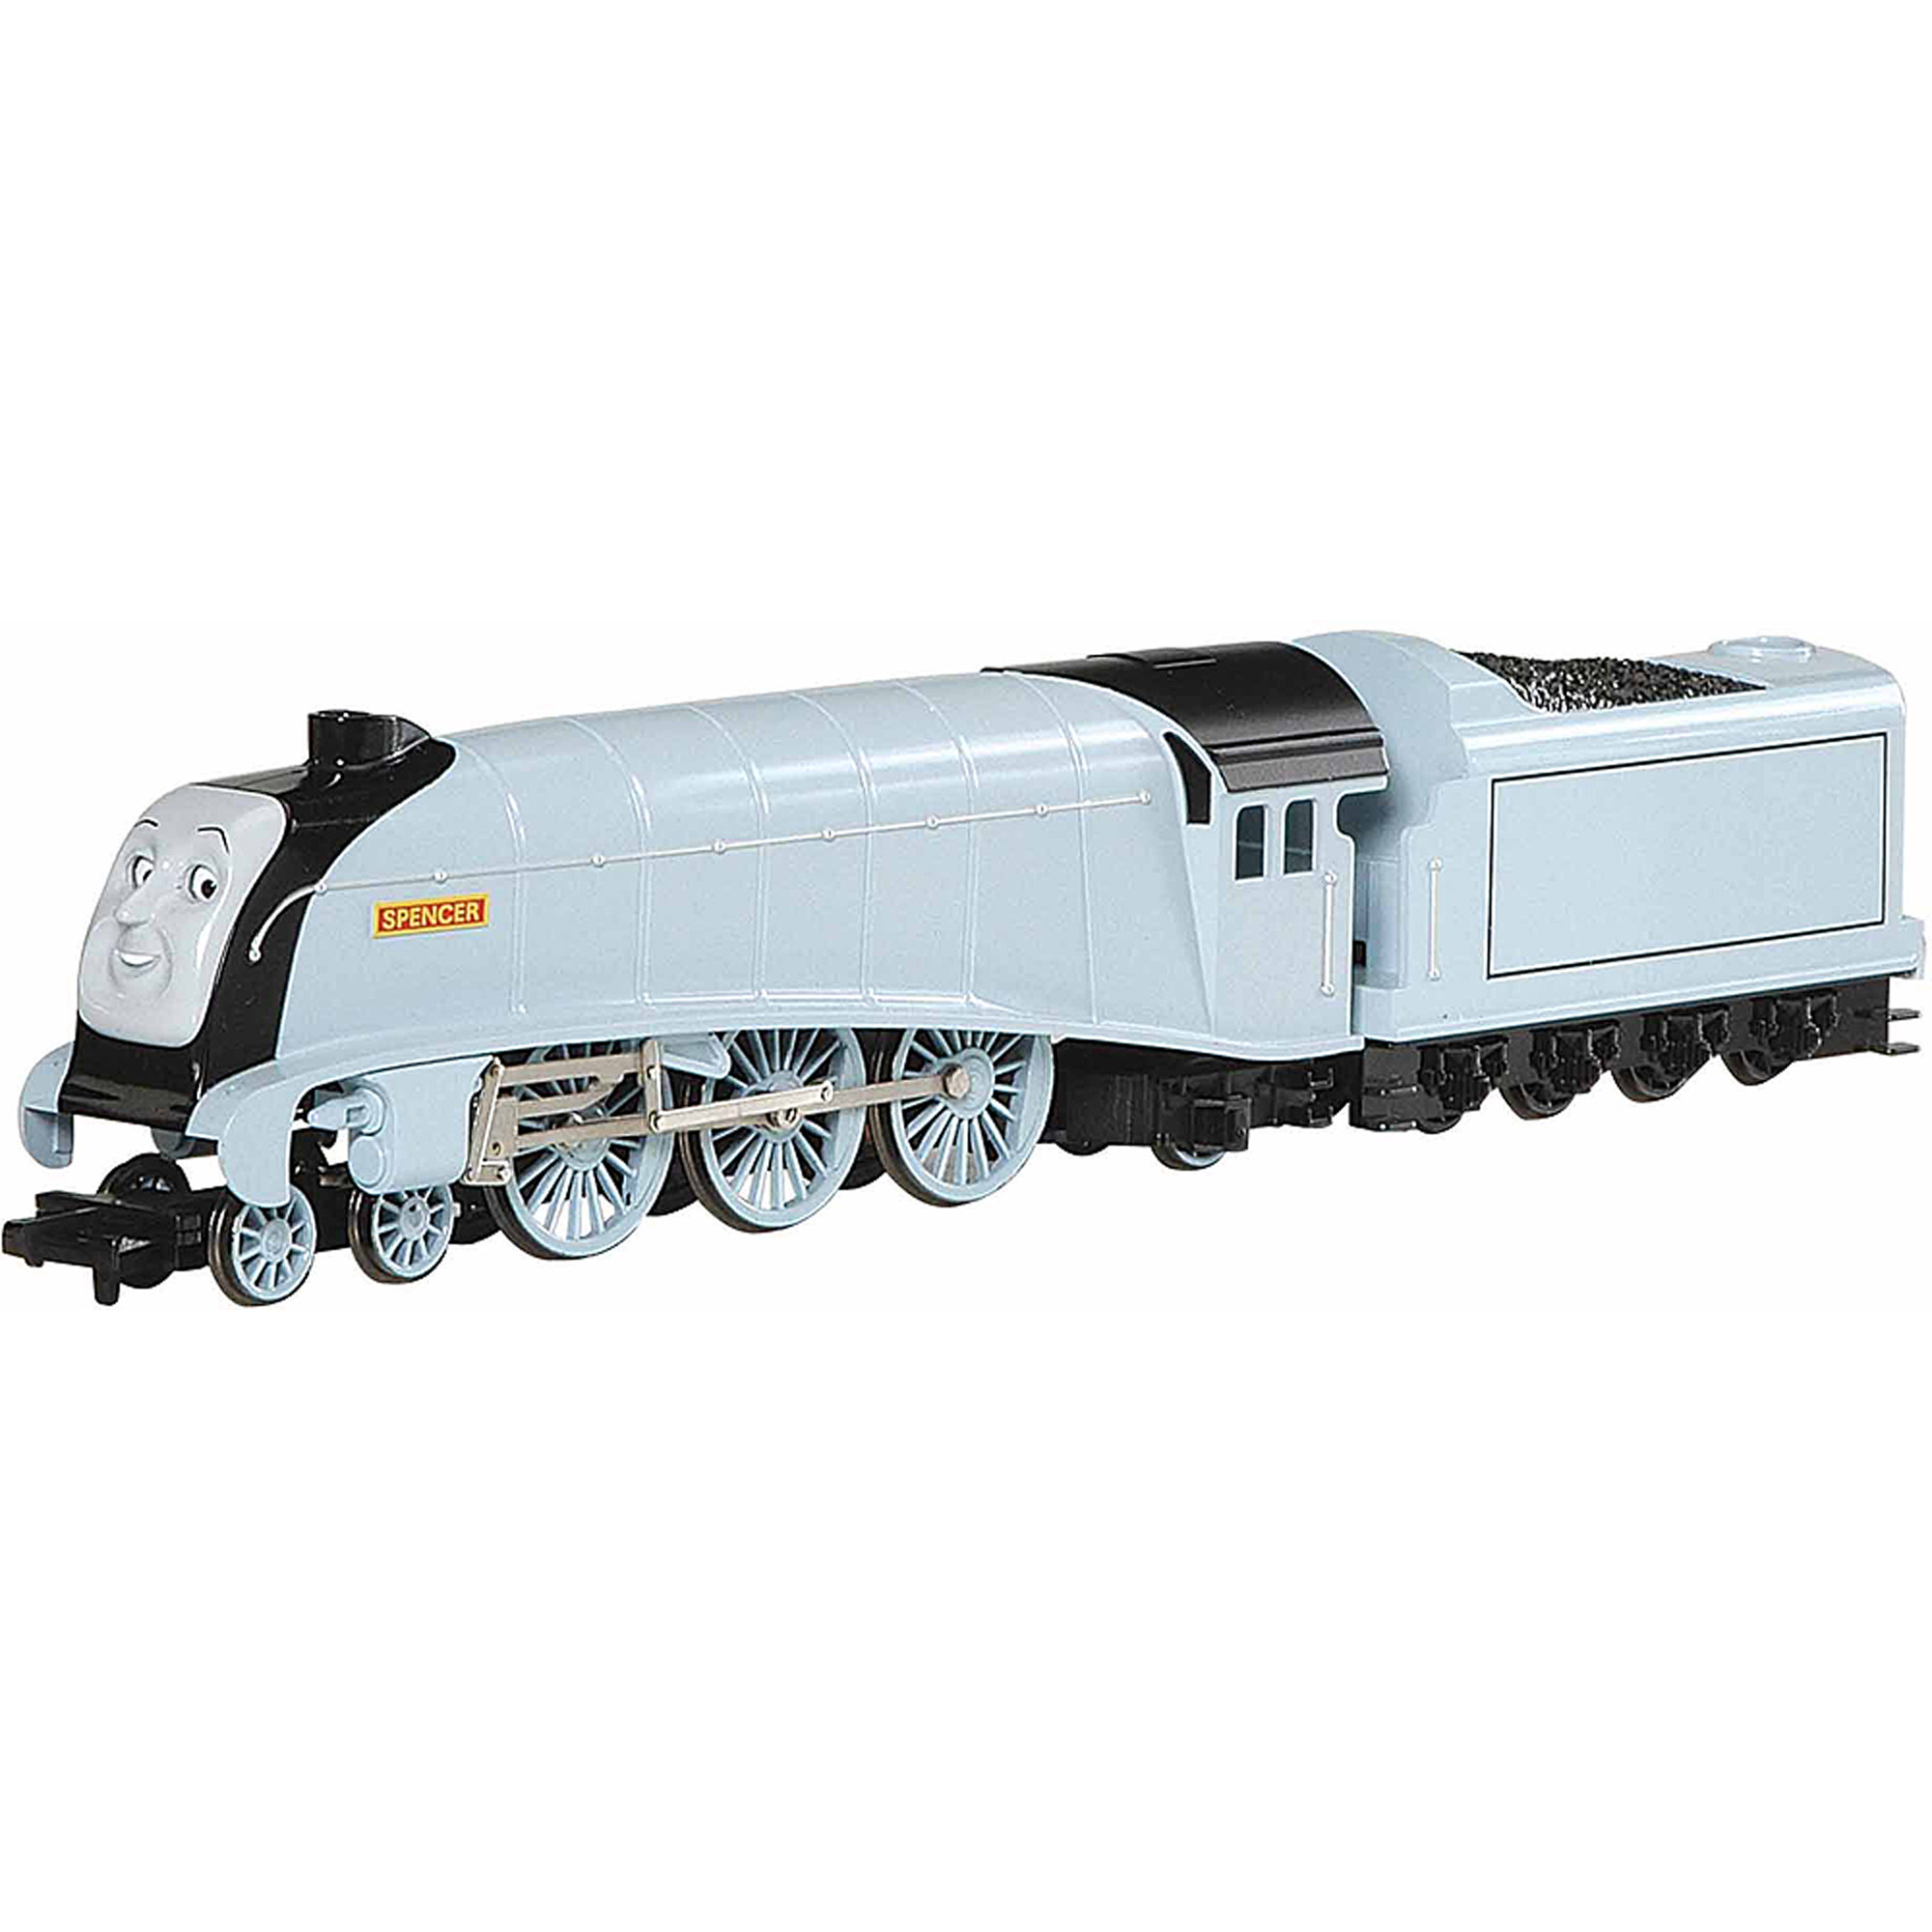 Bachmann Trains Thomas and Friends Spencer Locomotive with Moving Eyes, HO Scale Train by Bachmann